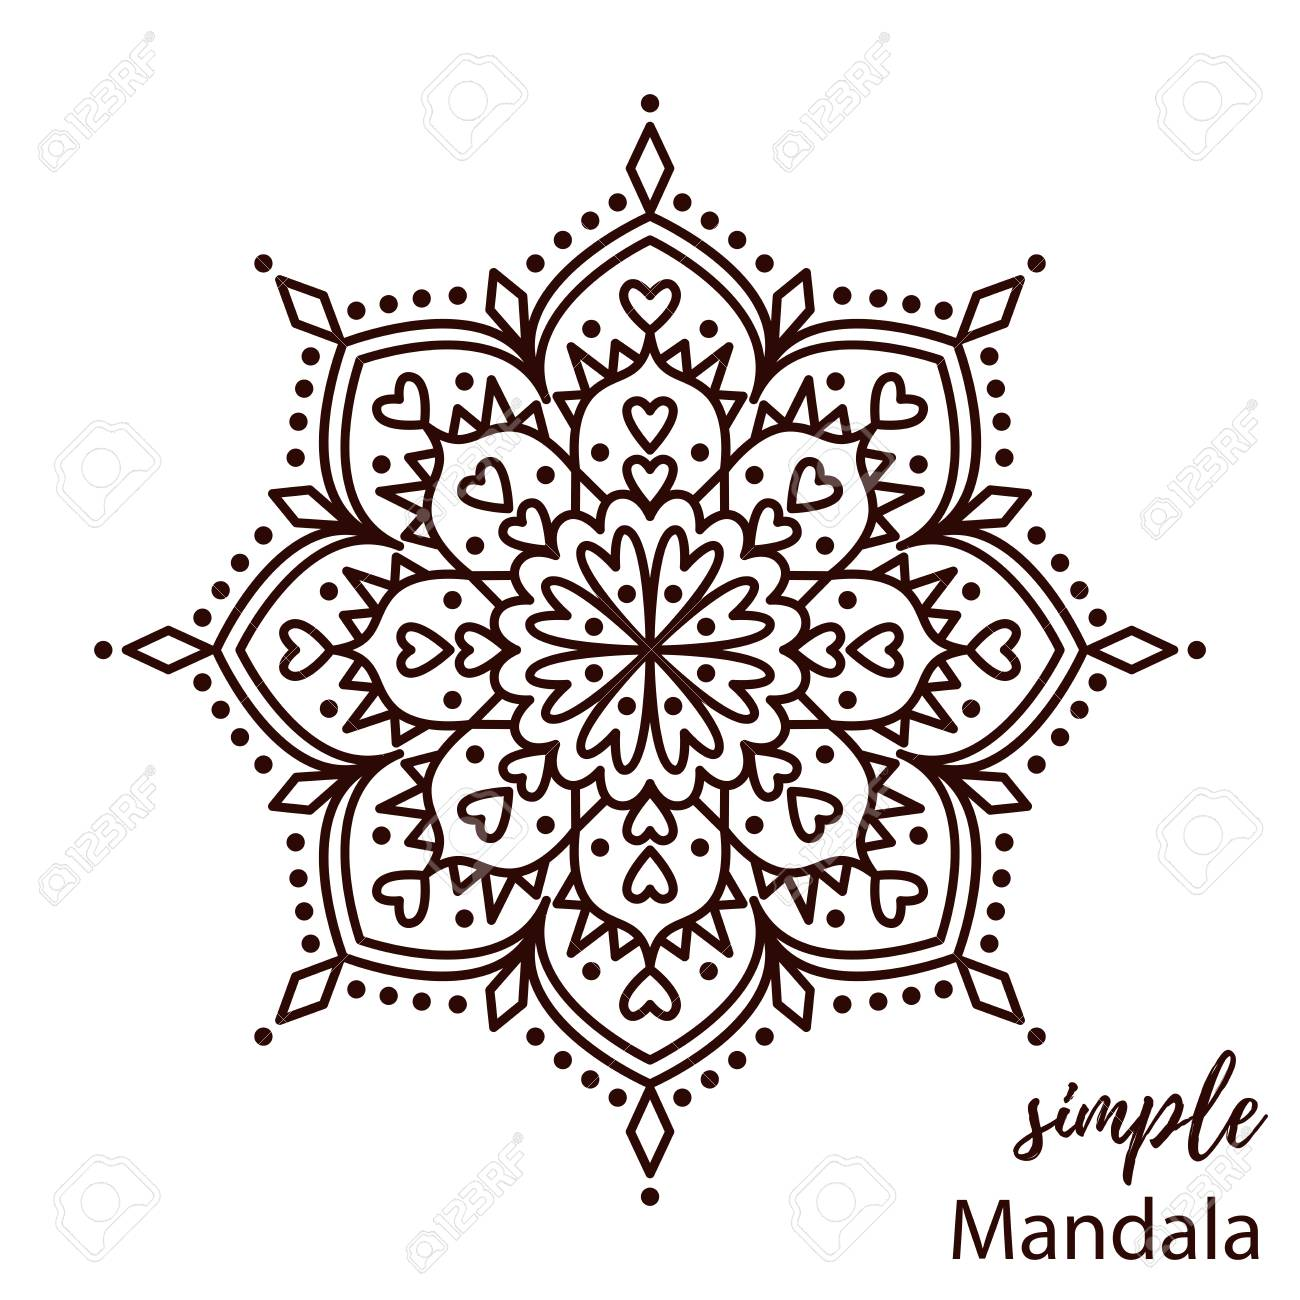 Cute Simple Mandala Coloring Page Royalty Free Cliparts, Vectors ...